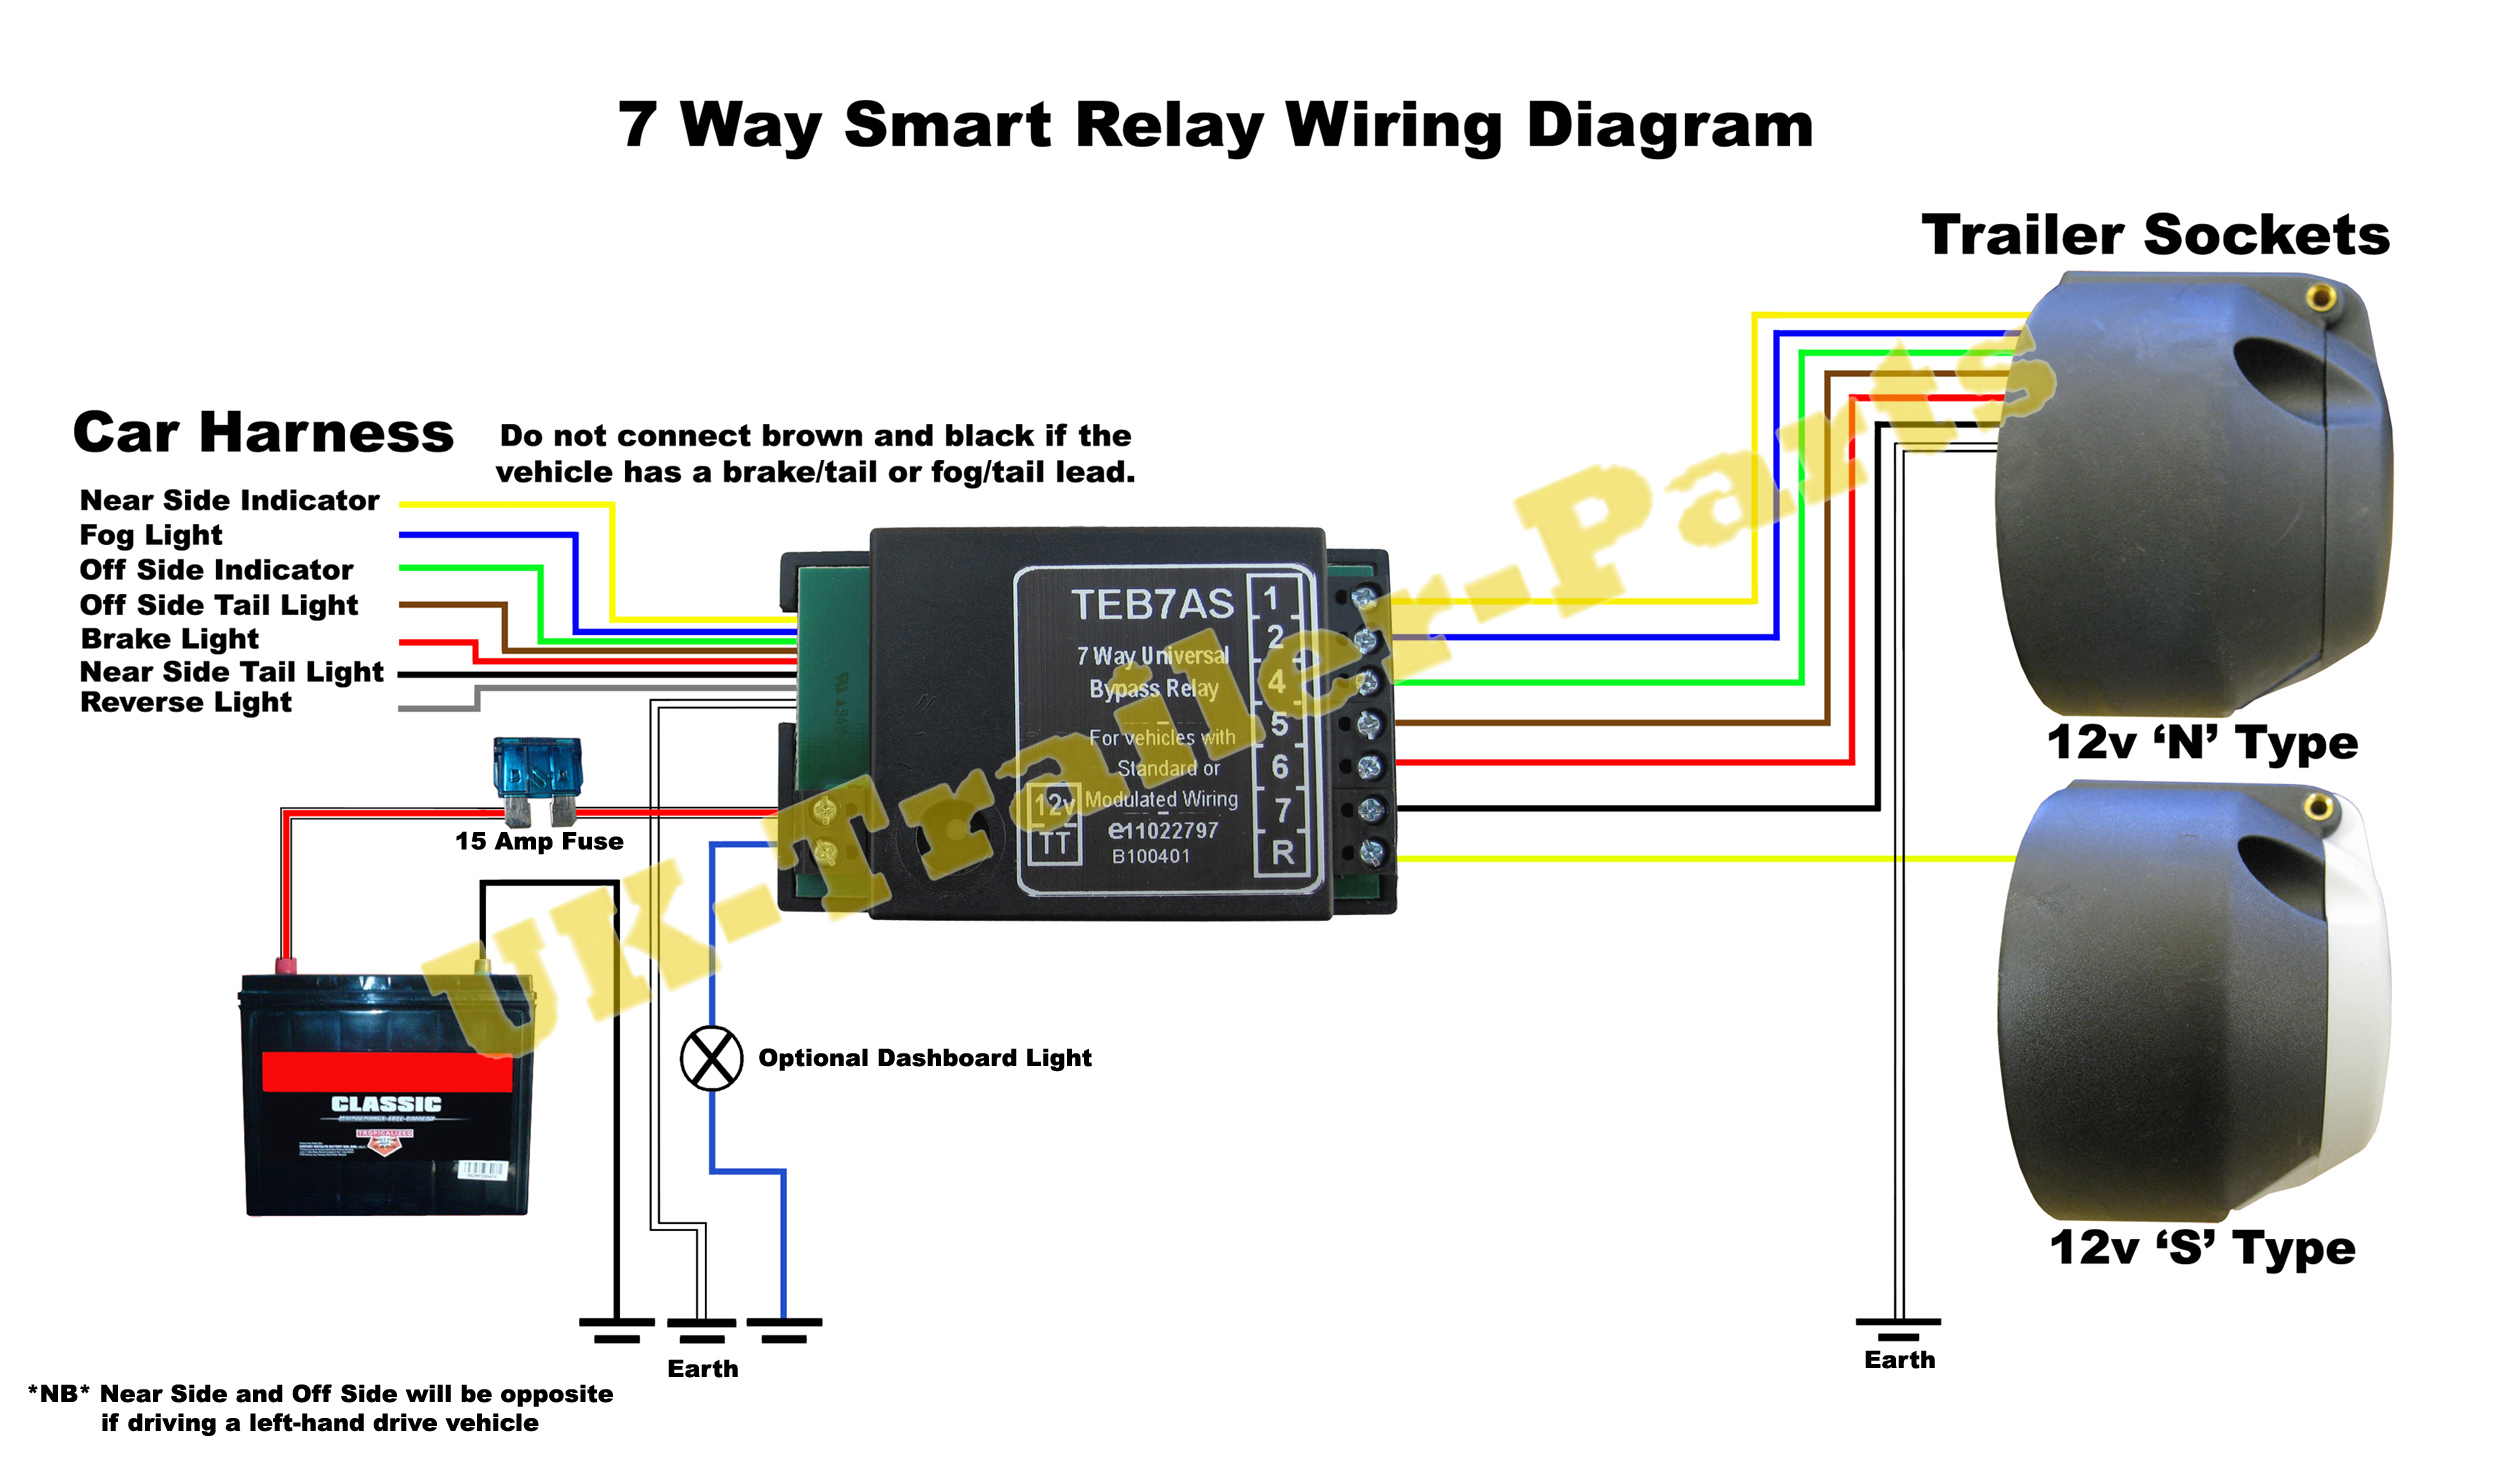 Smart Relay Wiring Diagram